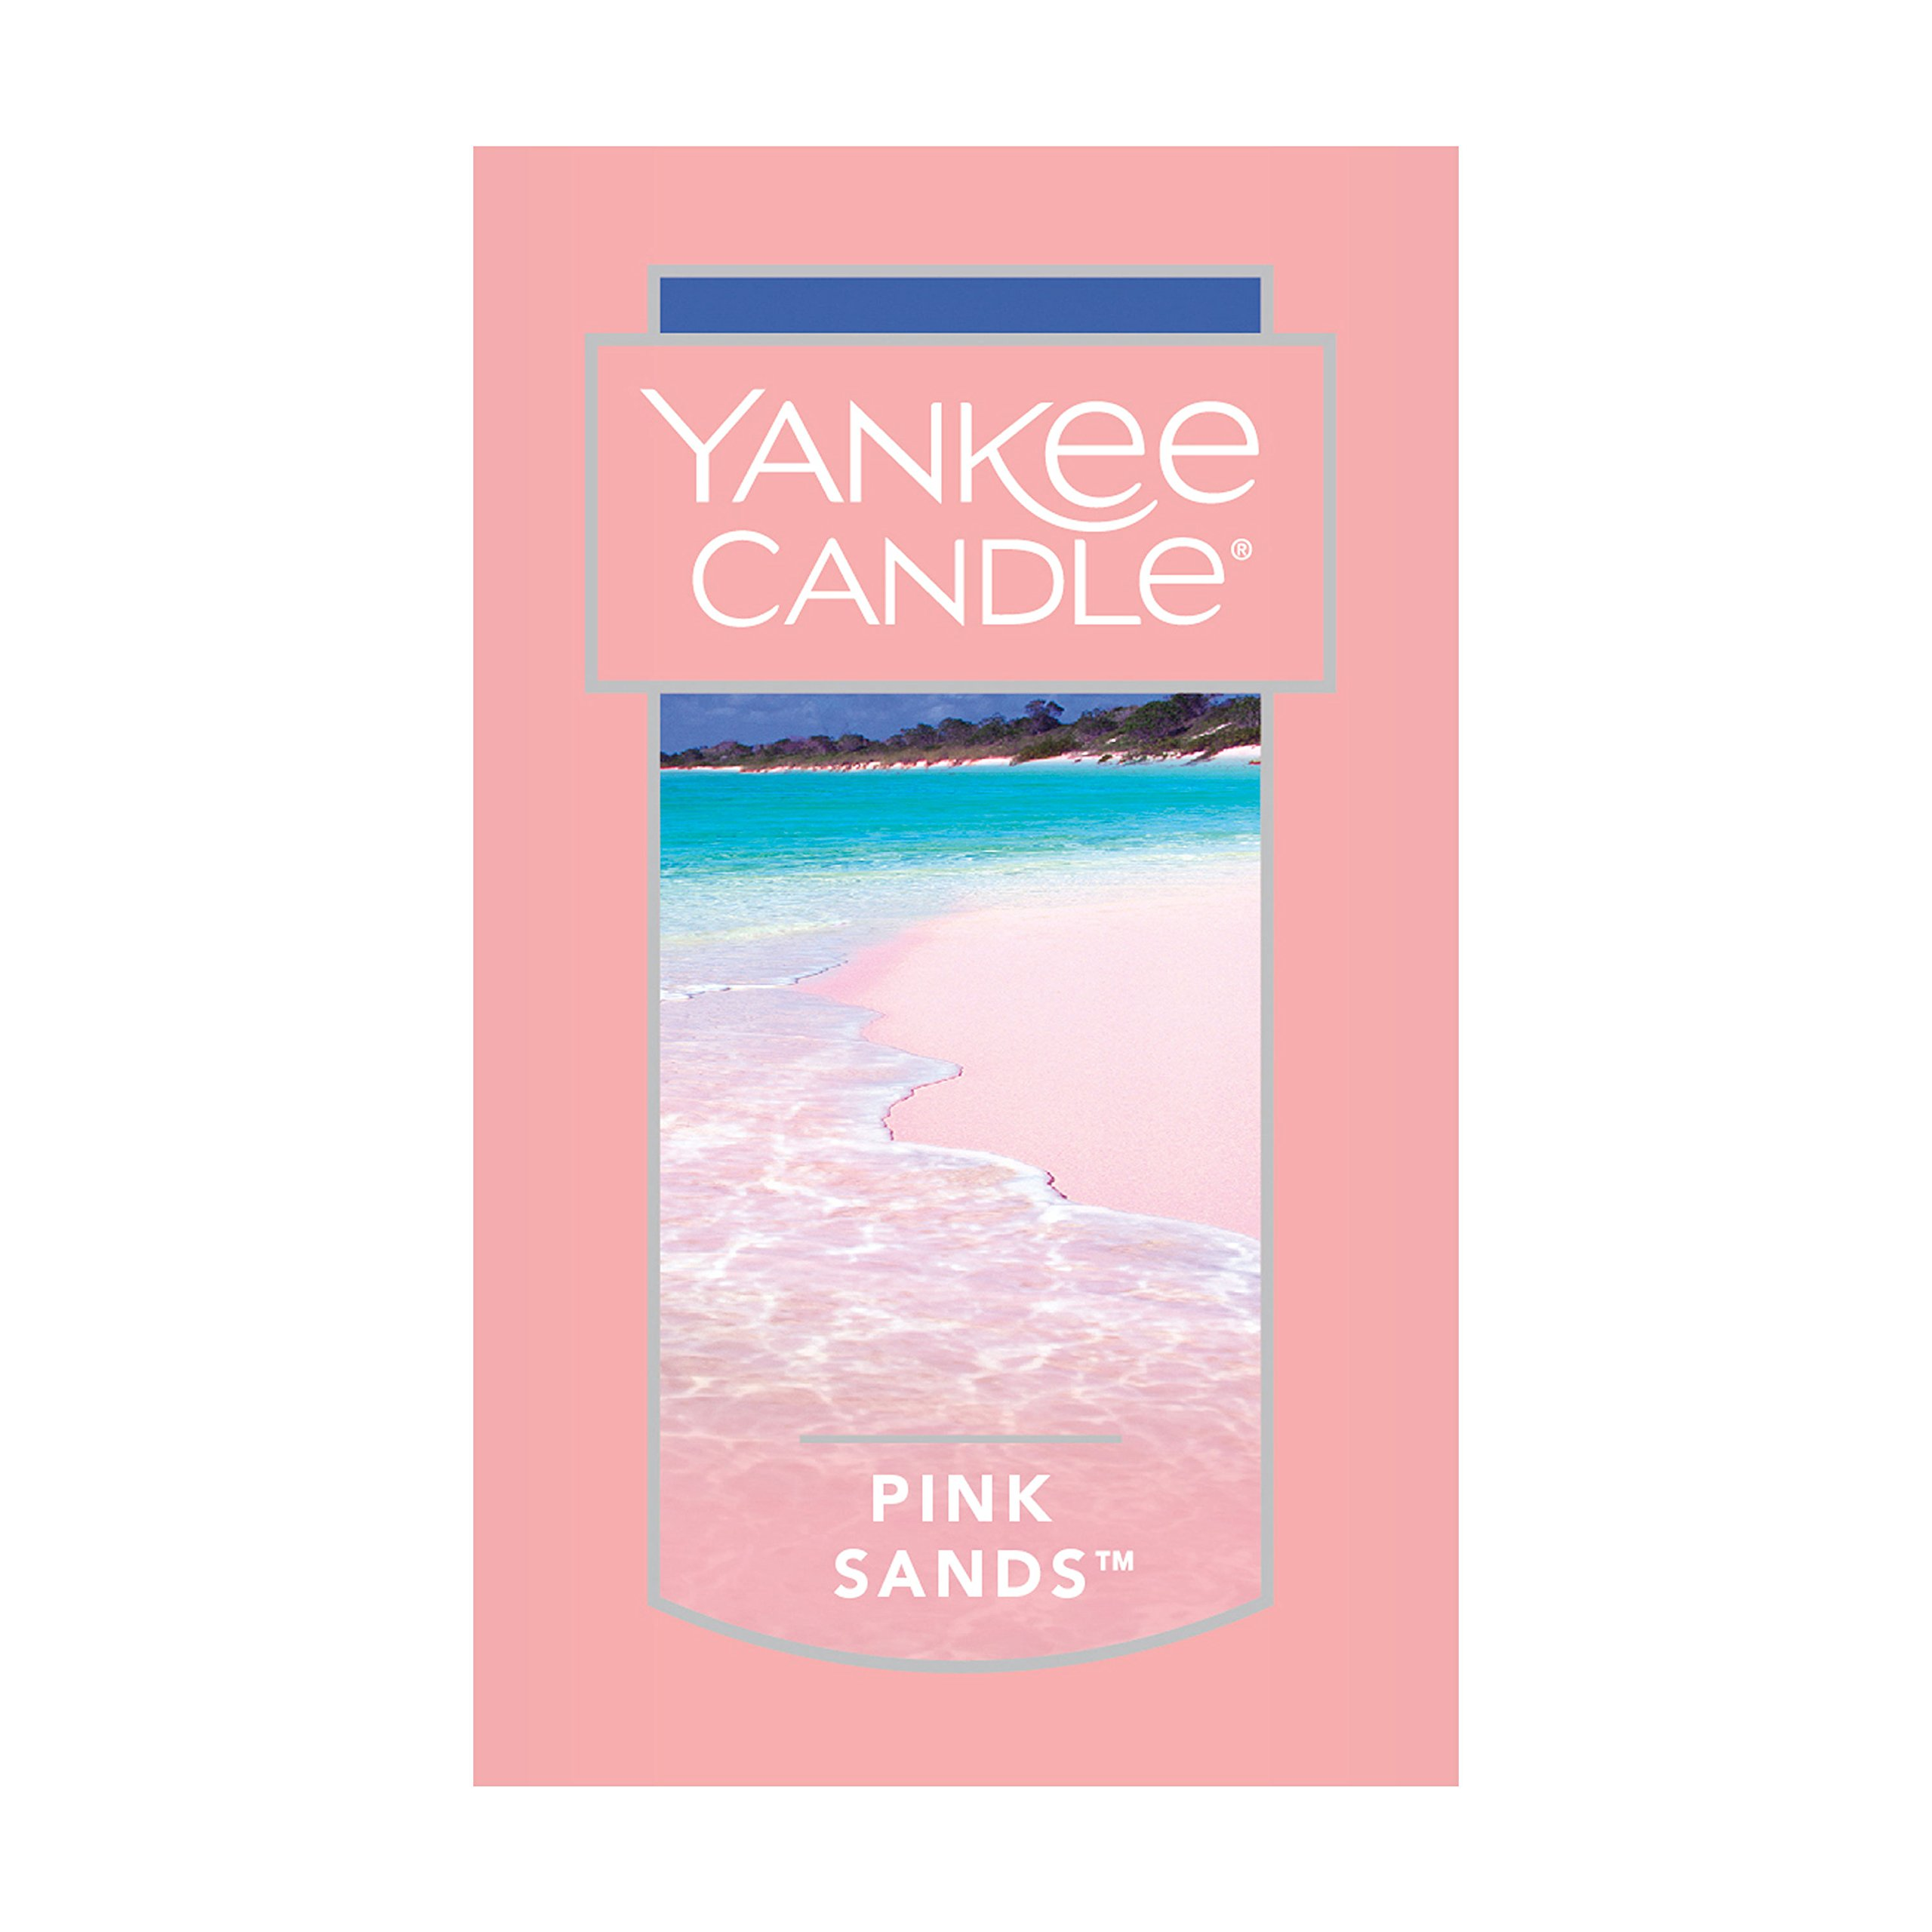 Yankee Candle Charming Scents Car Air Freshener Refill, Pink Sands